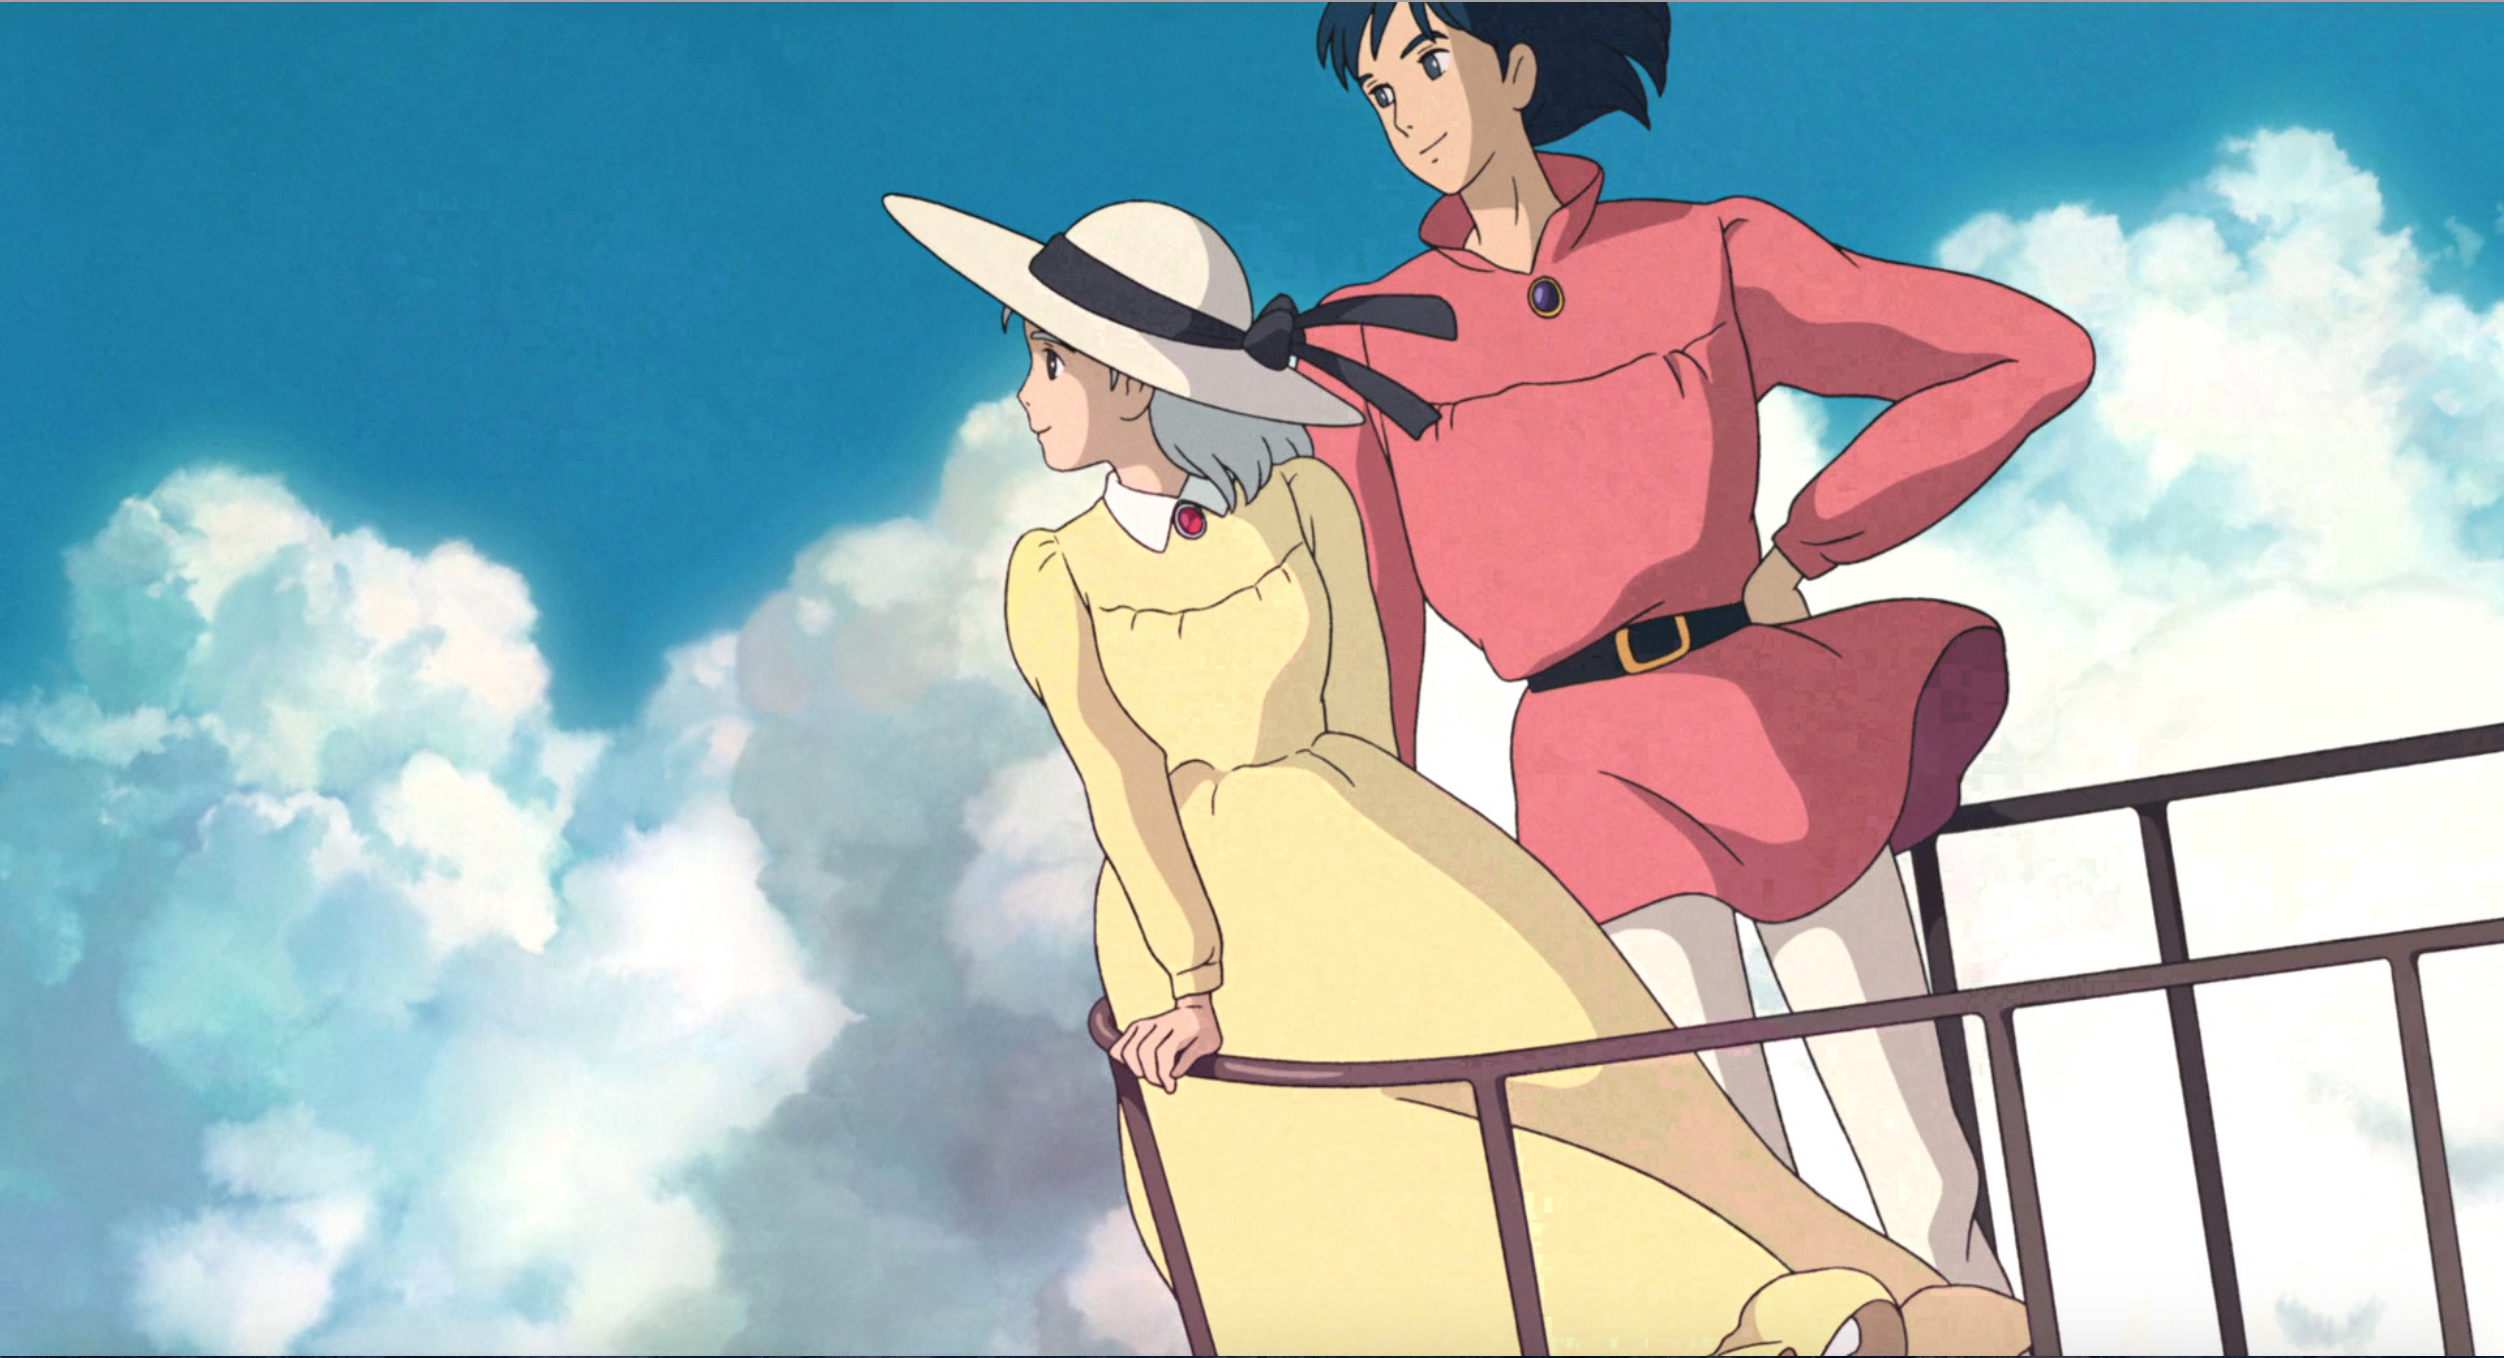 Sophie and Howl flying above the clouds in a happy ending